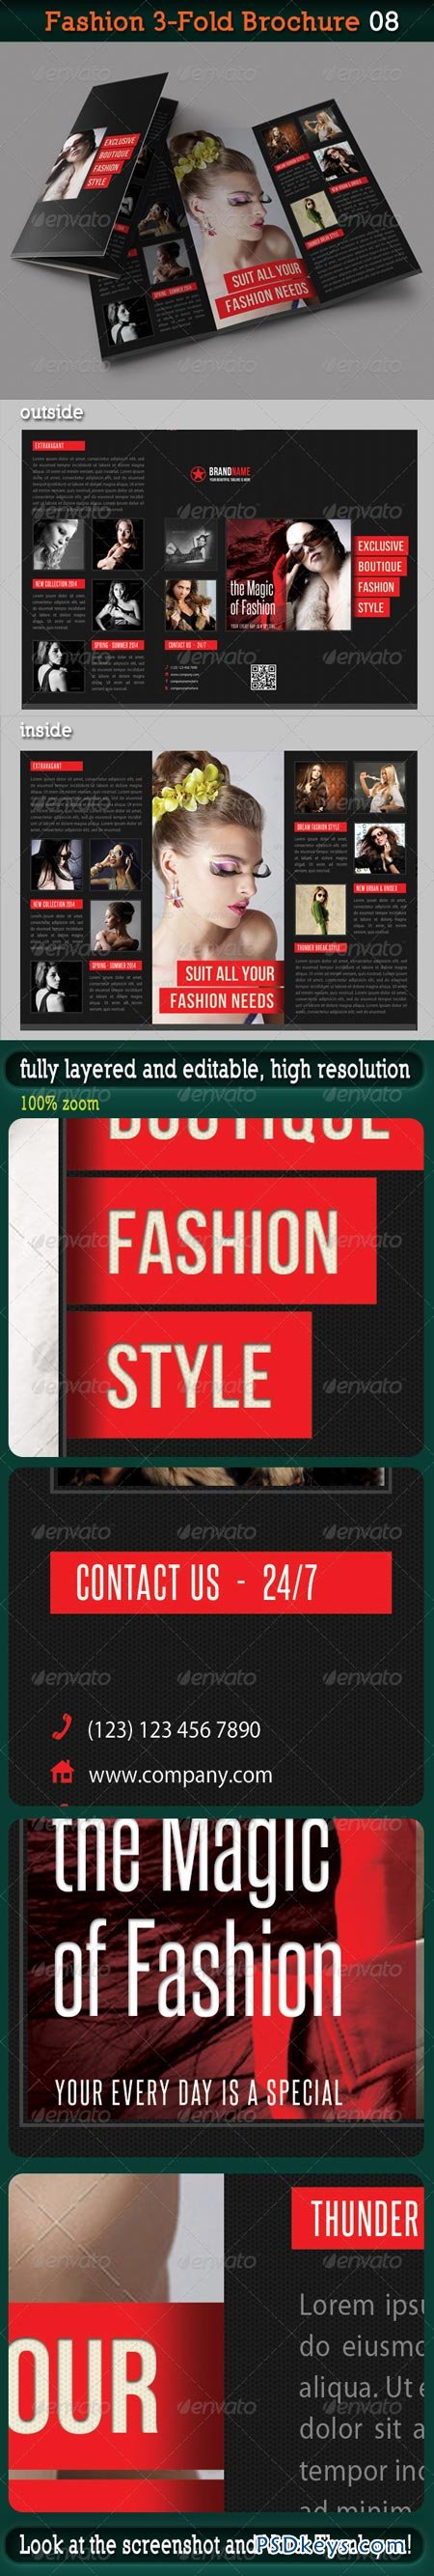 Fashion 3-Fold Brochure 08 6265529